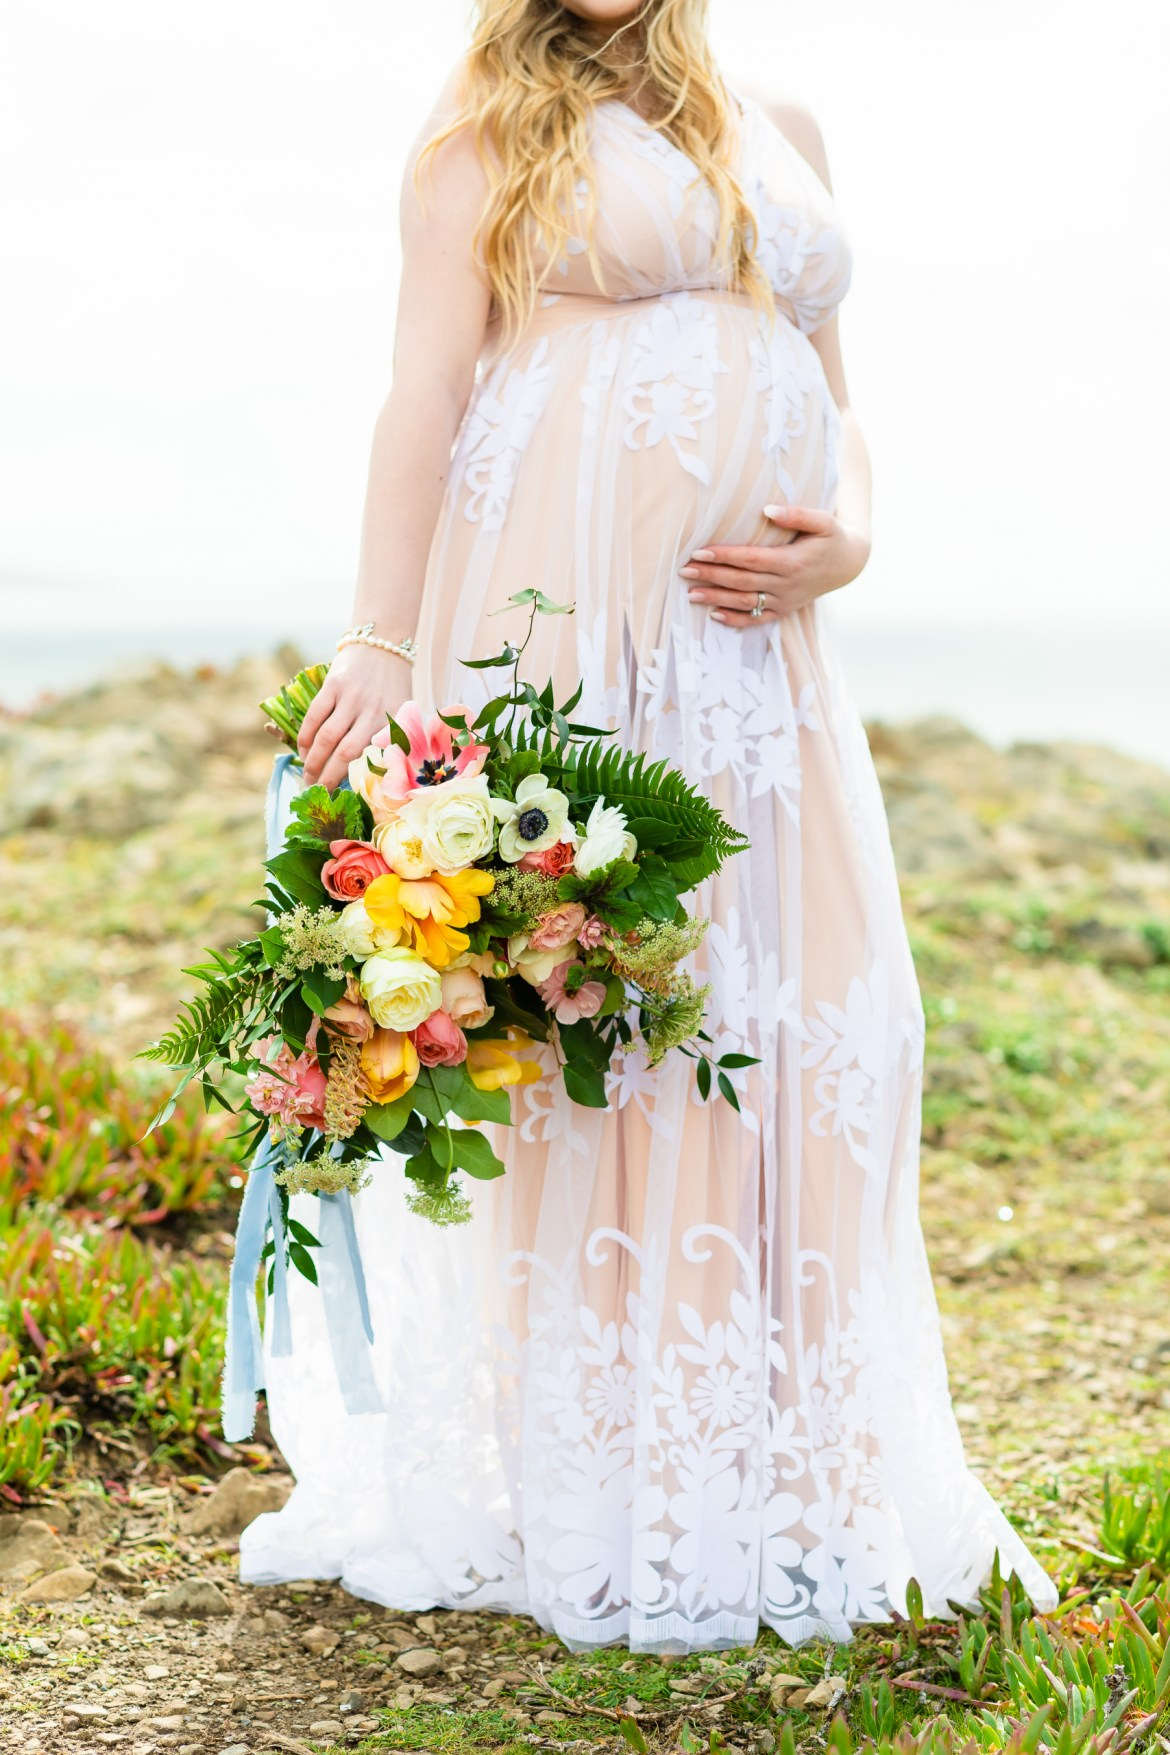 Shannon wears an off white dress to show off her pregnancy. The photo is cropped at the top of her pregnant belly. She holds a bouquet of colorful and bright flowers.